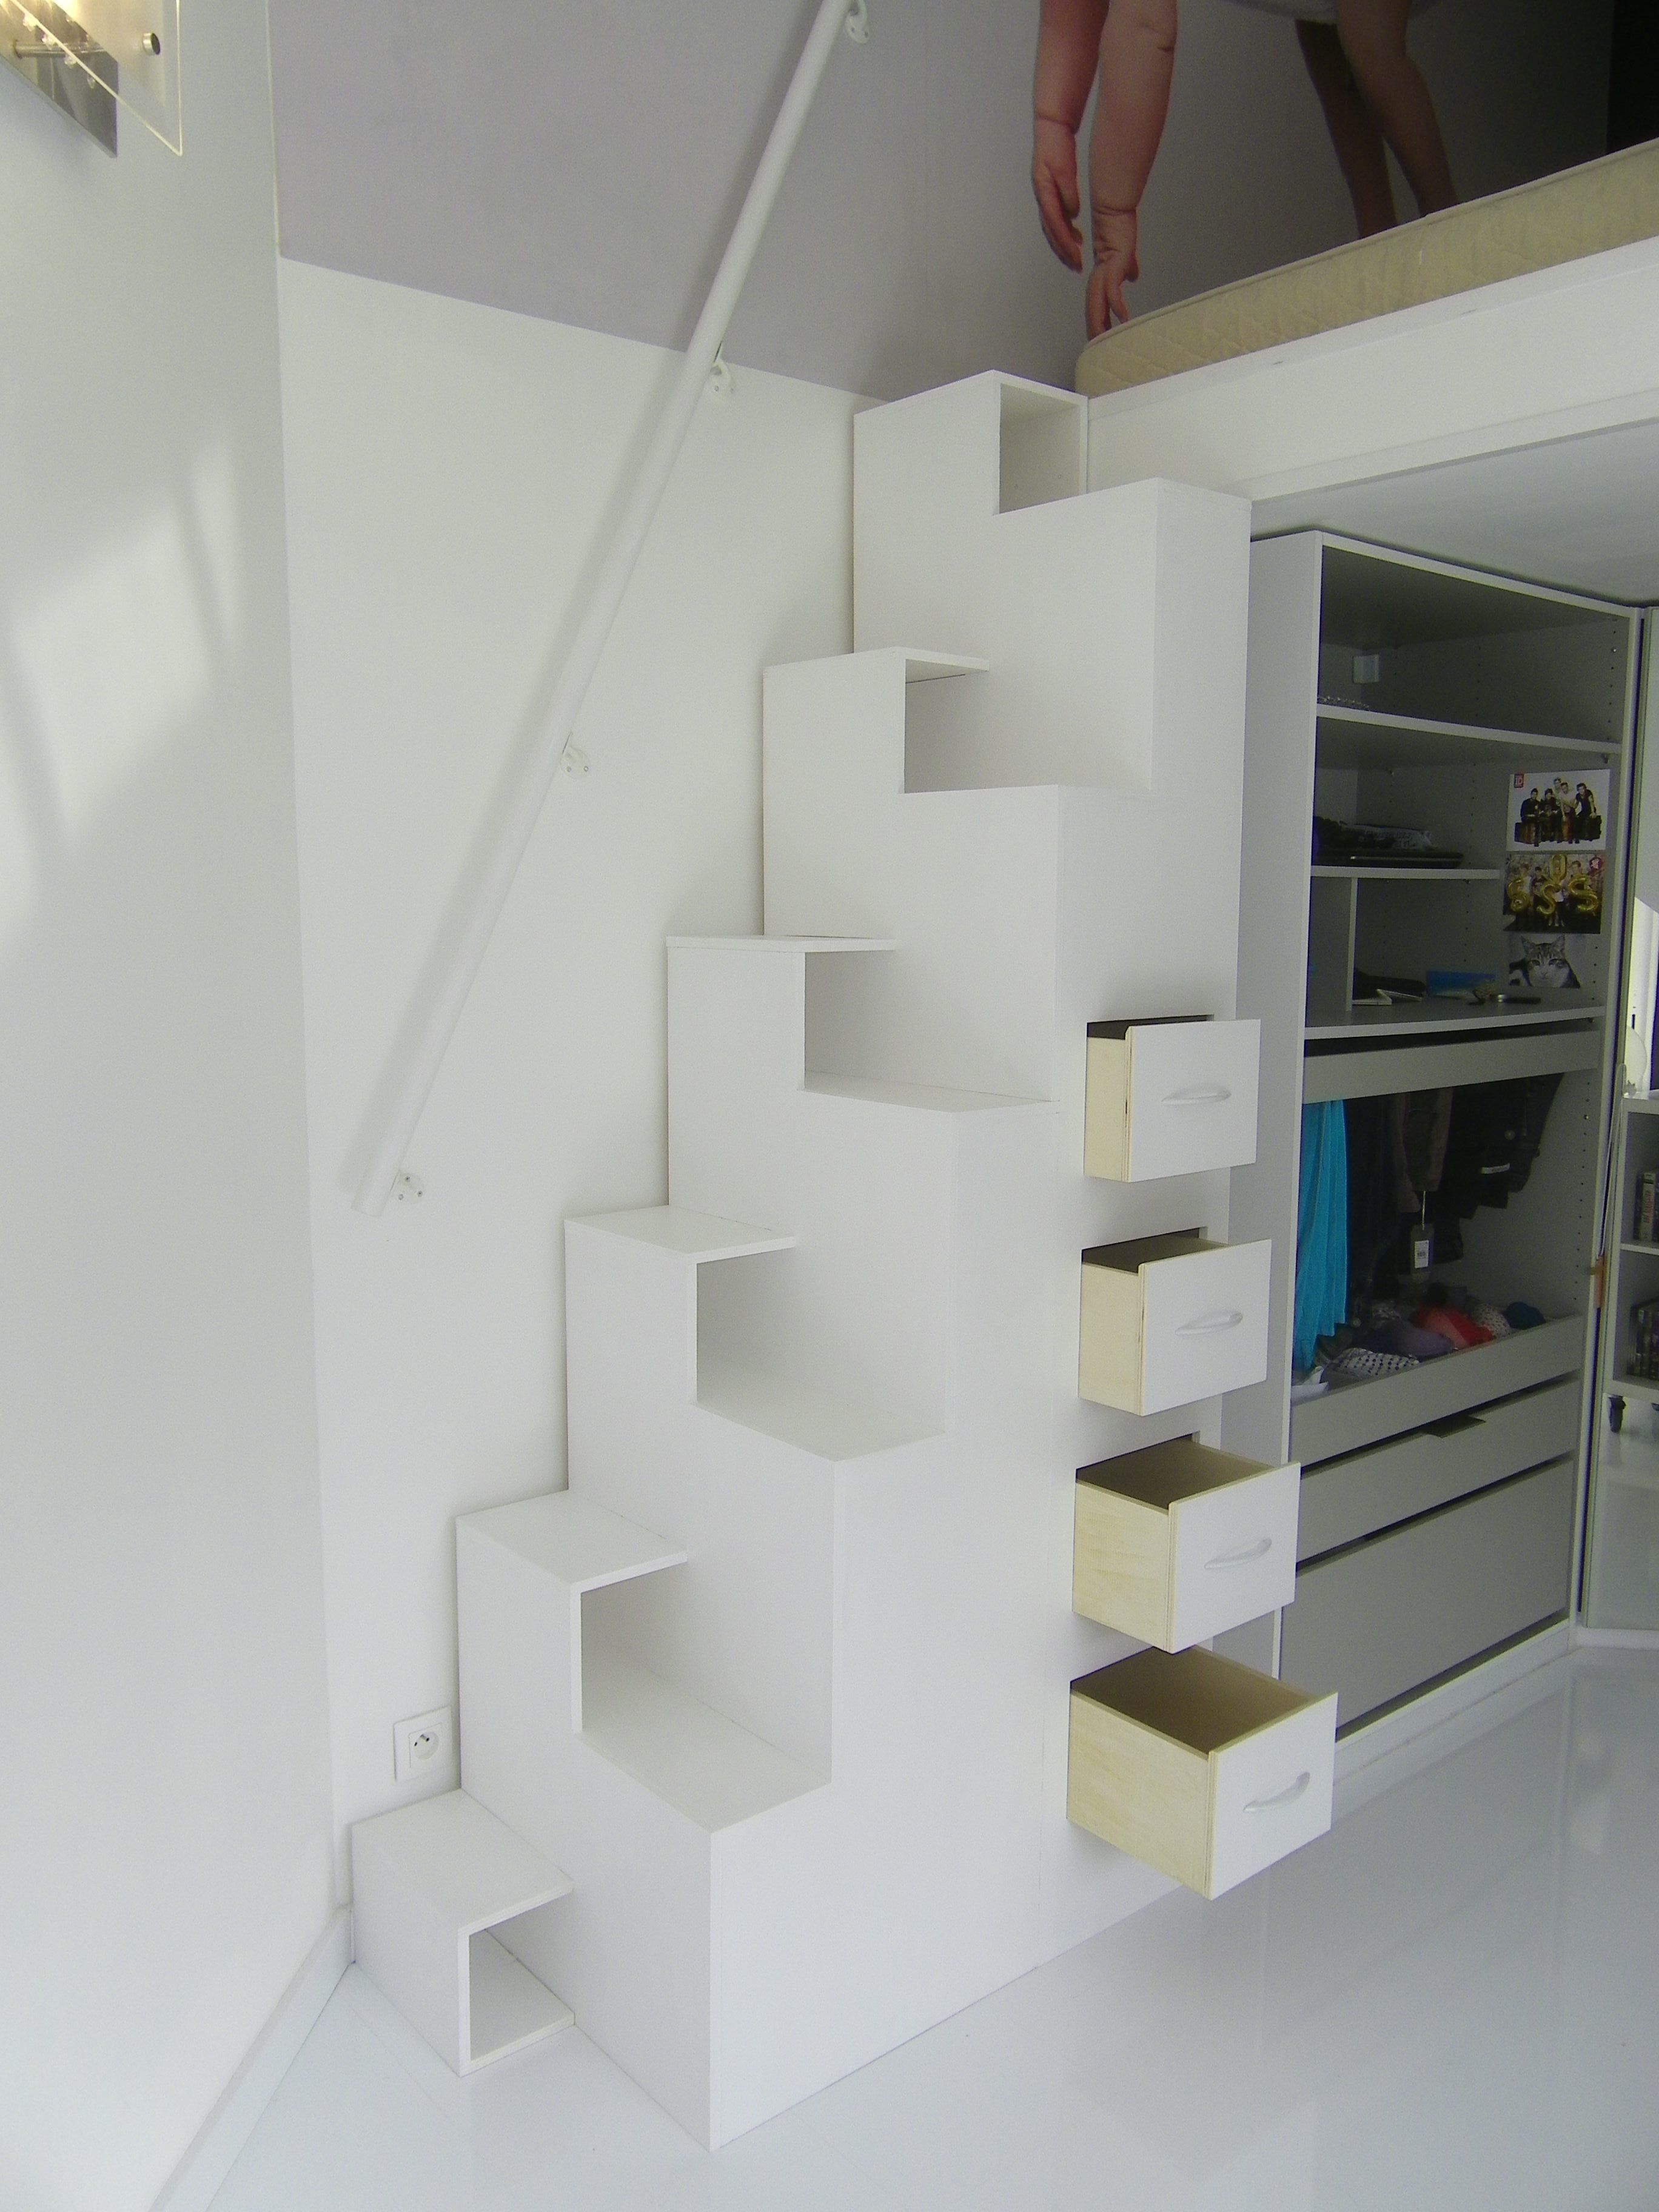 les queues d 39 arondes escalier japonais s t u d i o pinterest treppe treppe dachboden. Black Bedroom Furniture Sets. Home Design Ideas